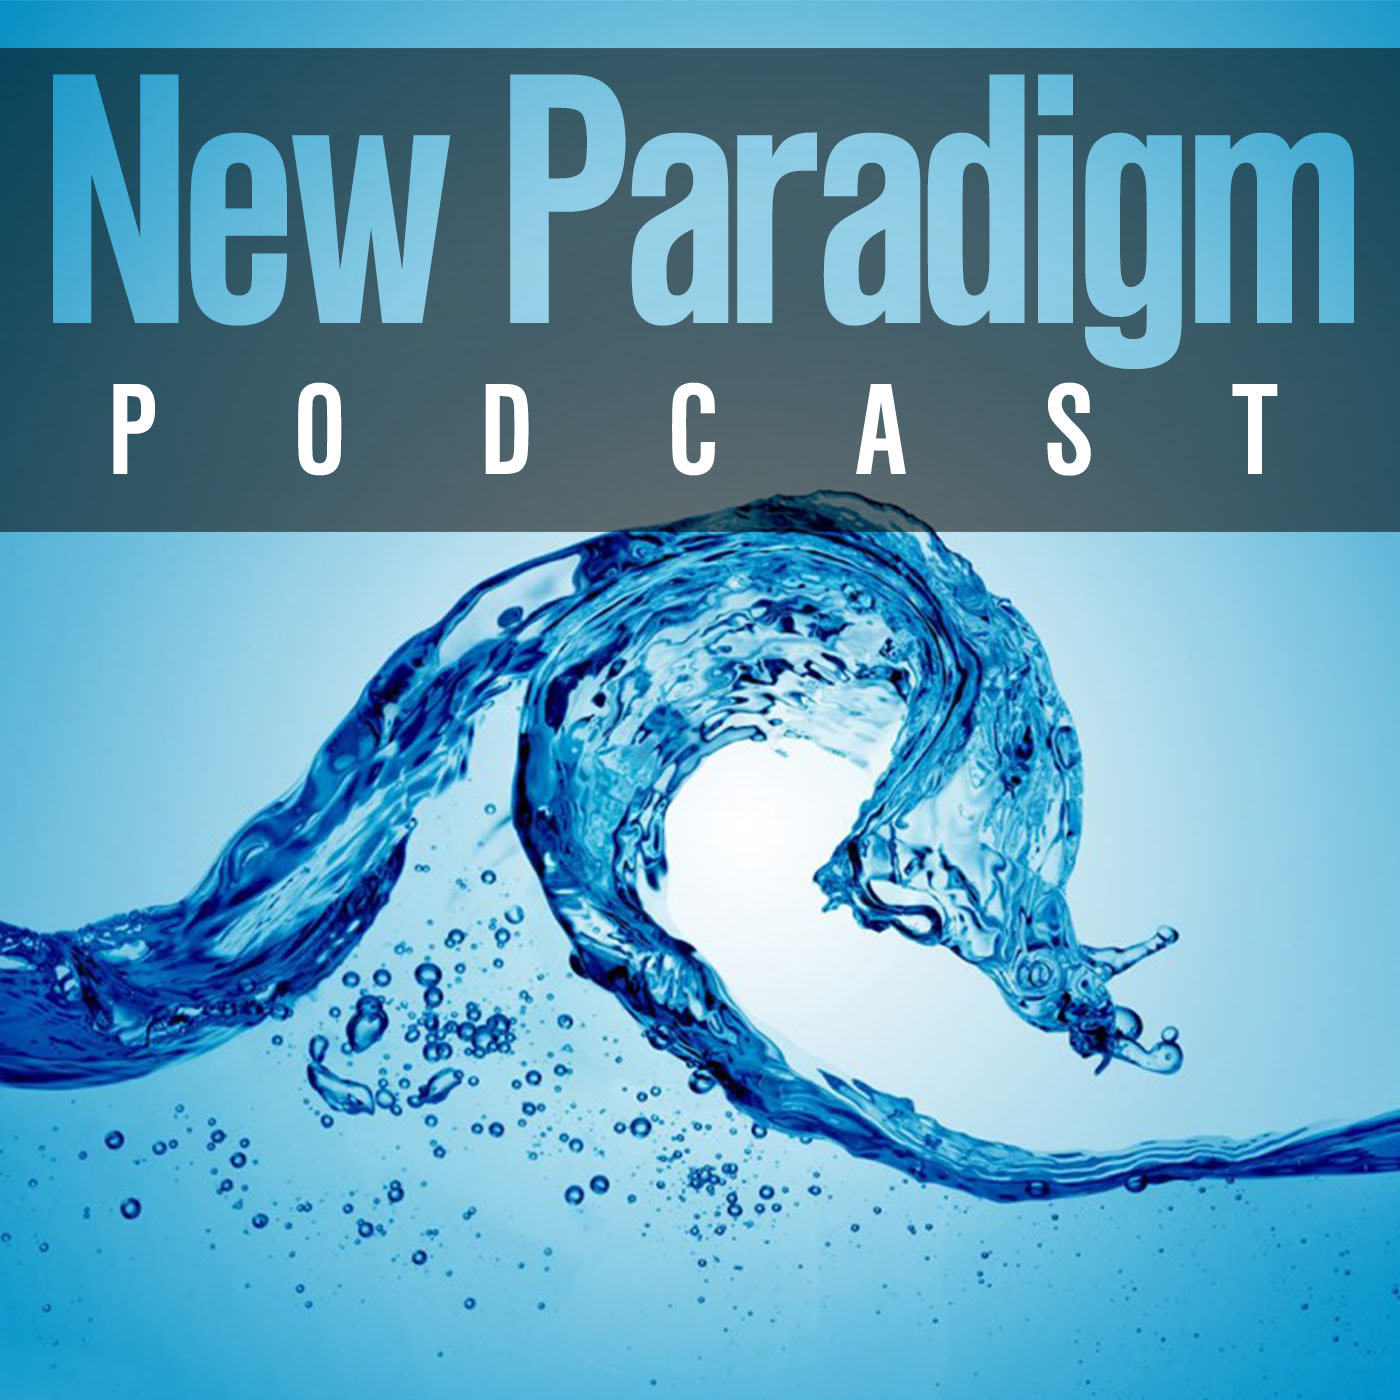 Morten Hake and The New Paradigm Podcast